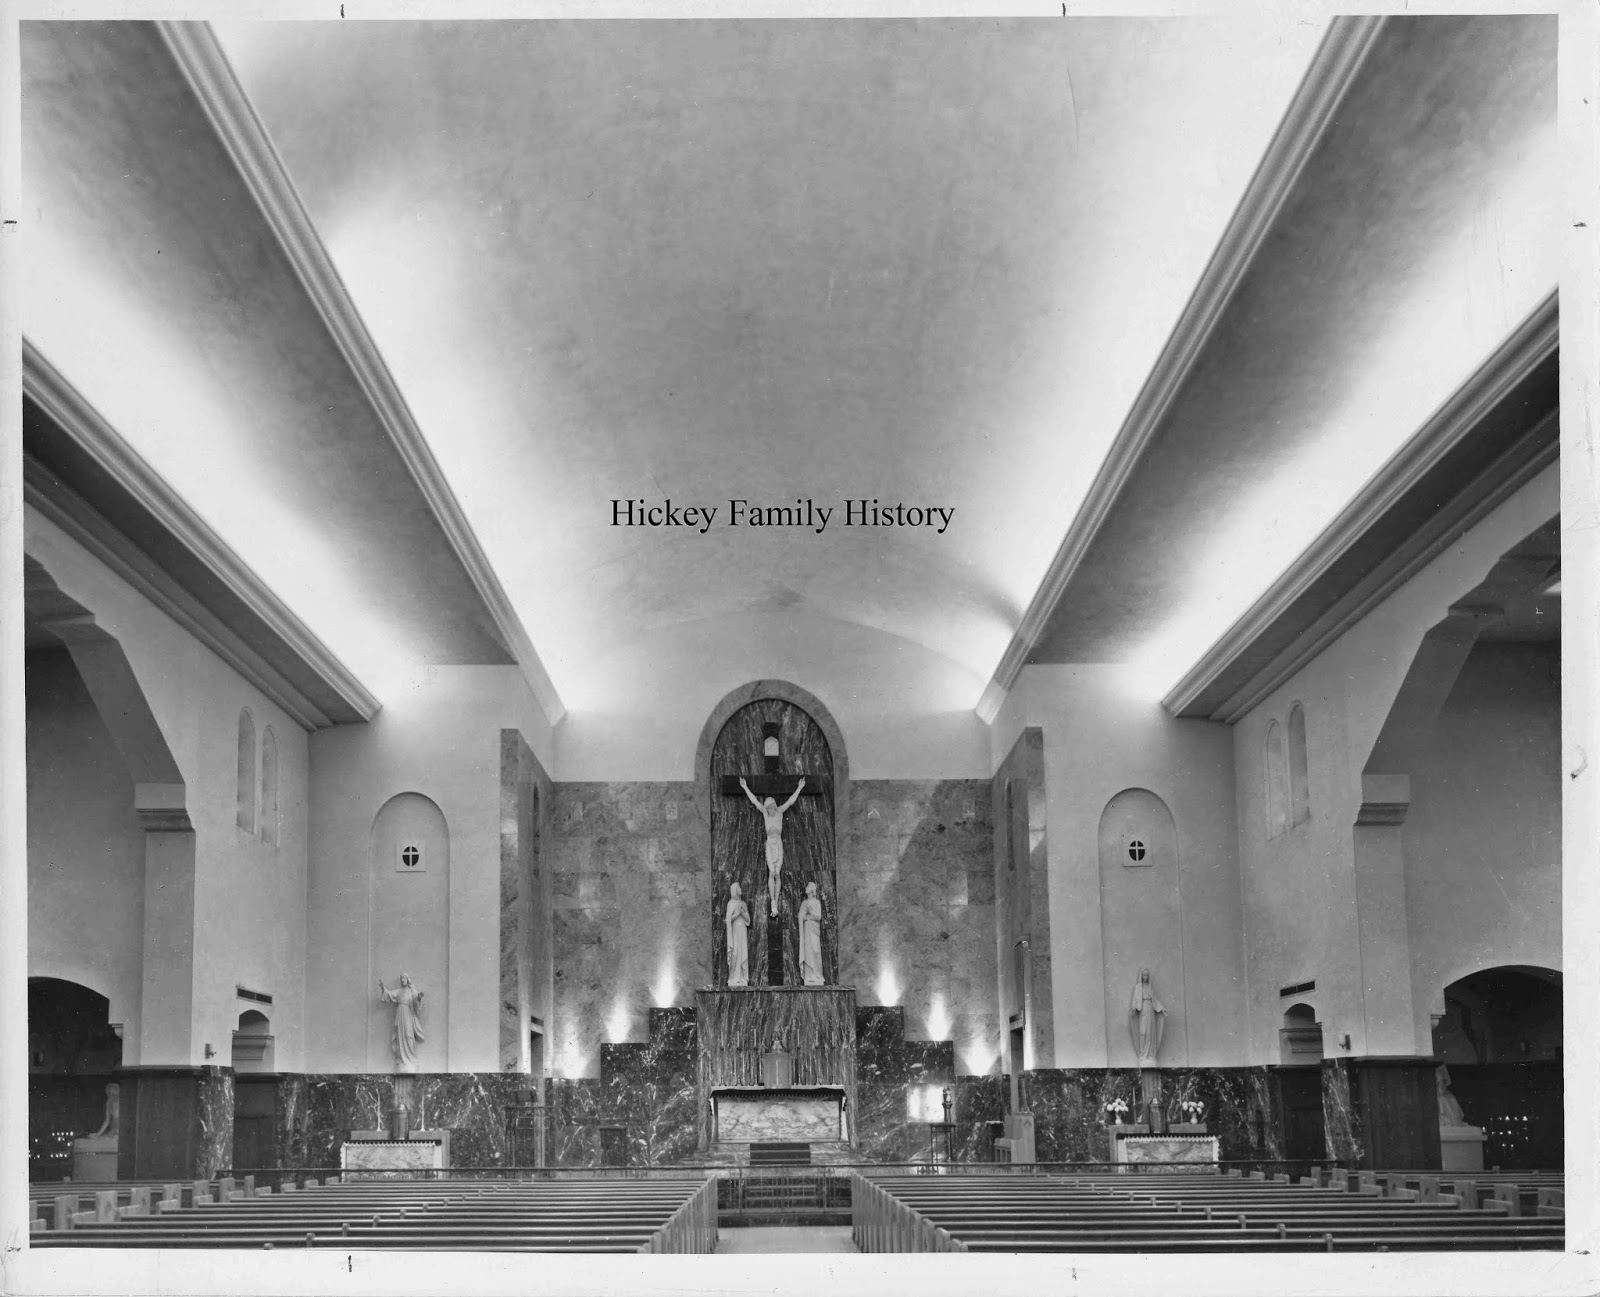 the newspaper clipping below stated that the church was completed in 1929 that is partially correct the school with a chapel inside it was completed